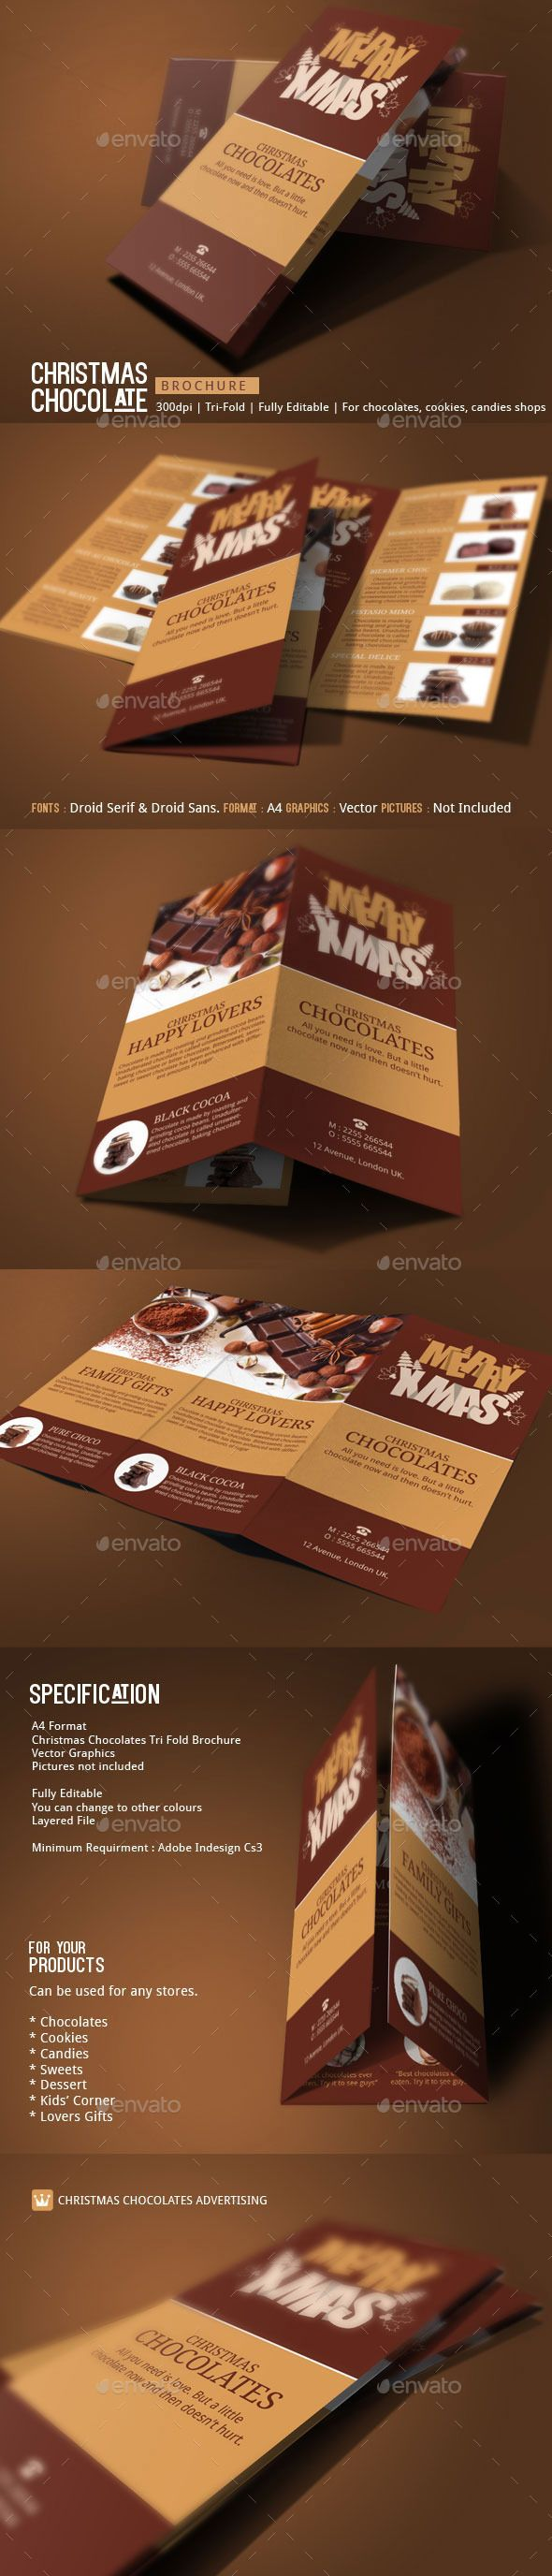 17 best images about christmas 2014 christmas deals templates on pinterest ecommerce for Christmas brochure templates